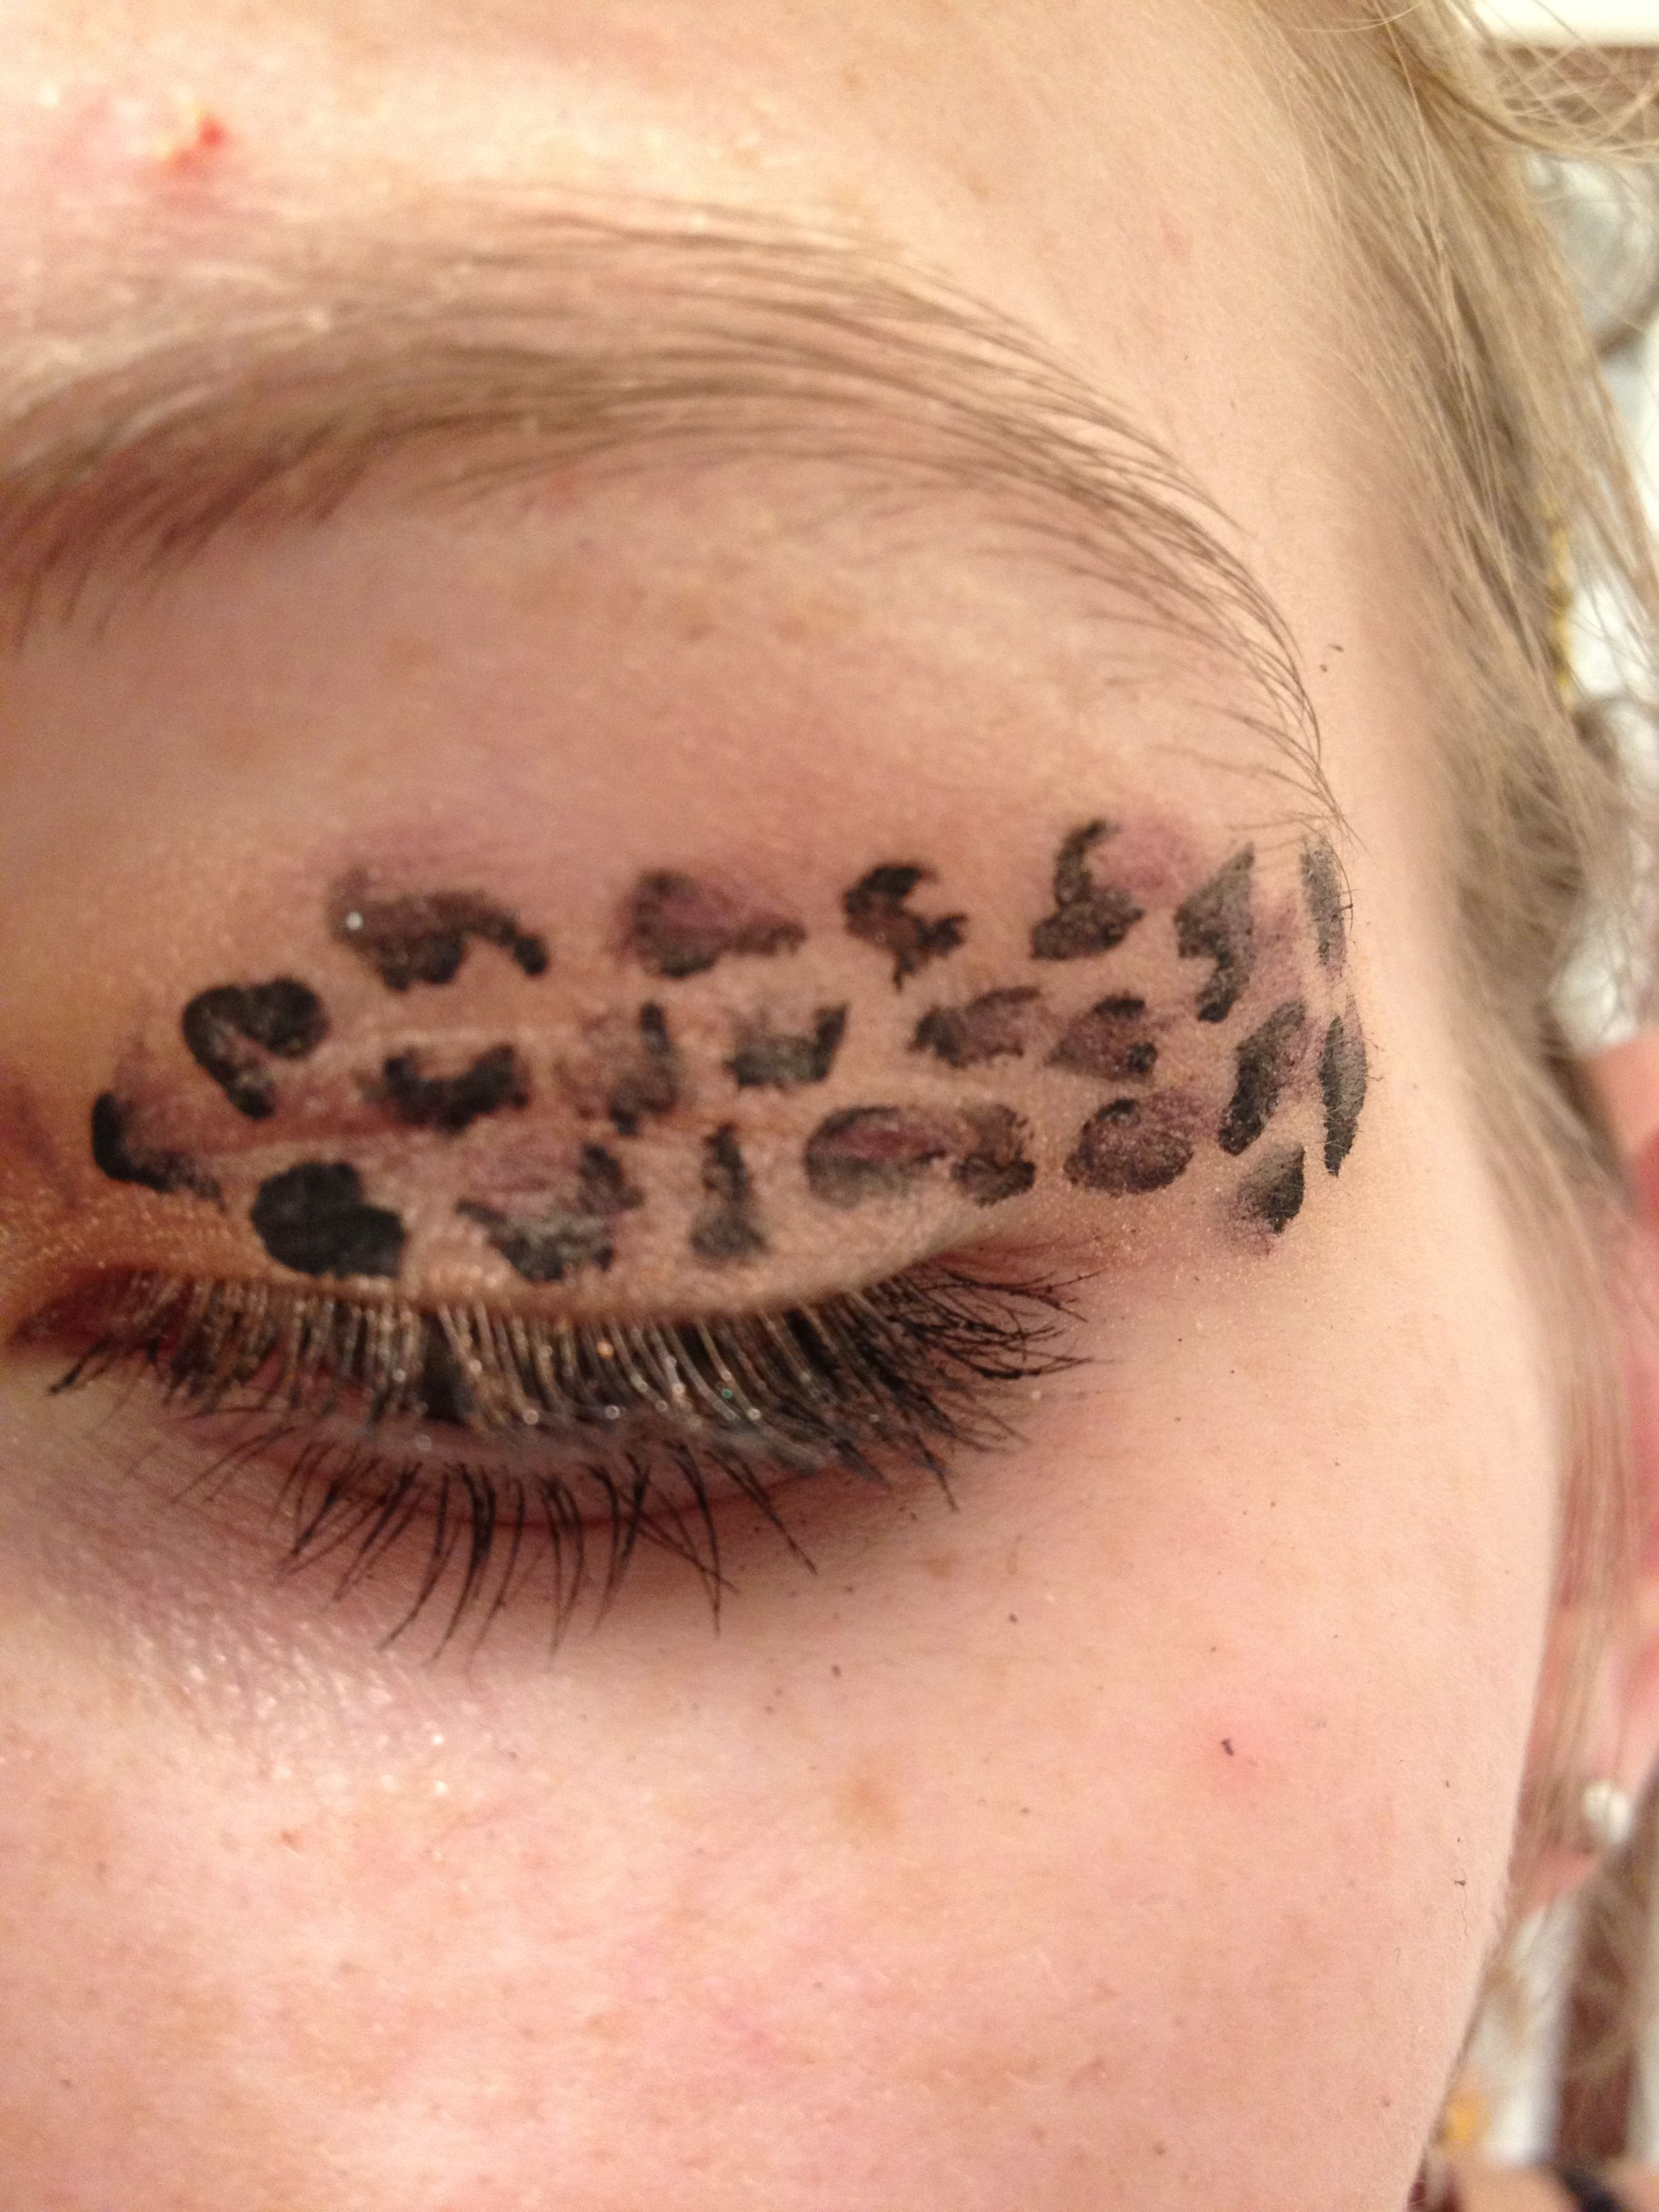 Cheetah Print Eyeshadow With Felt Tip Liquid Eyeliner And Eyeshadow